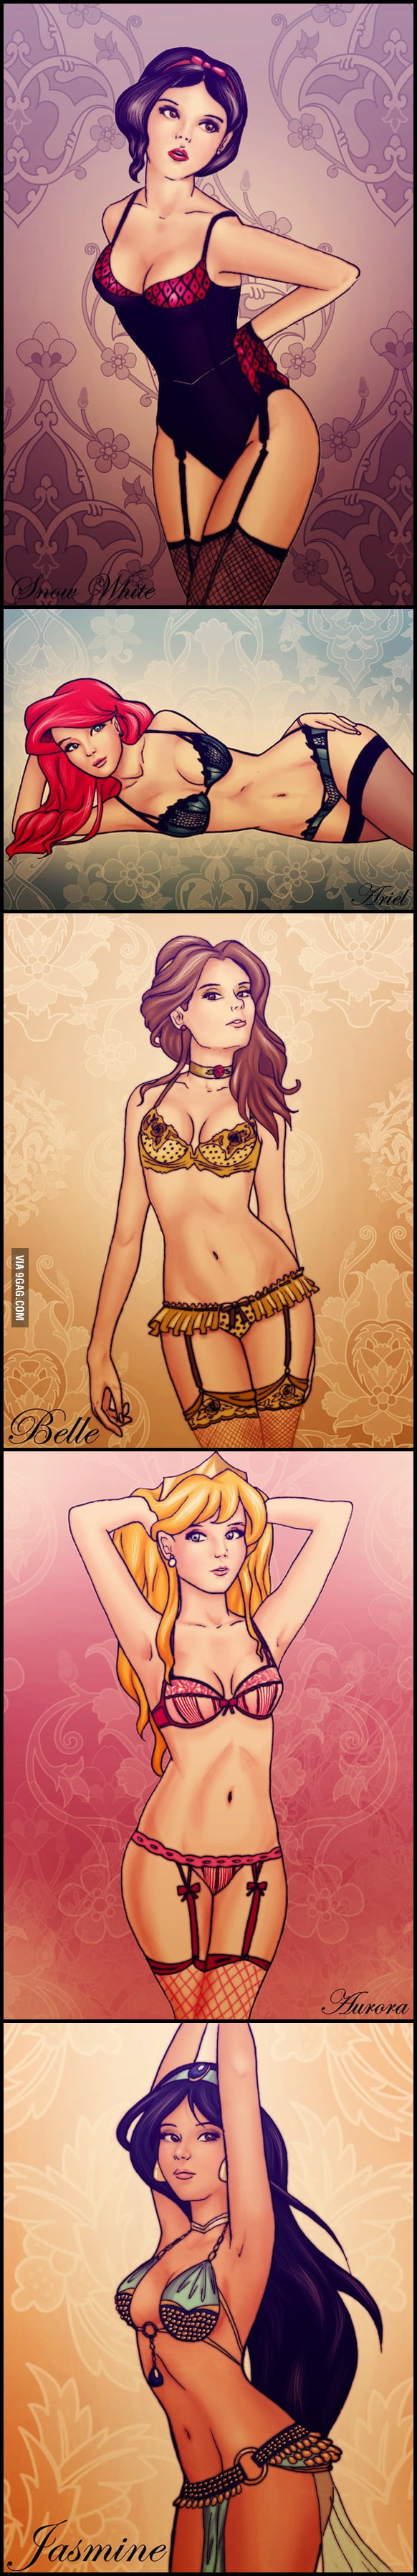 Disney Princesses in Lingerie